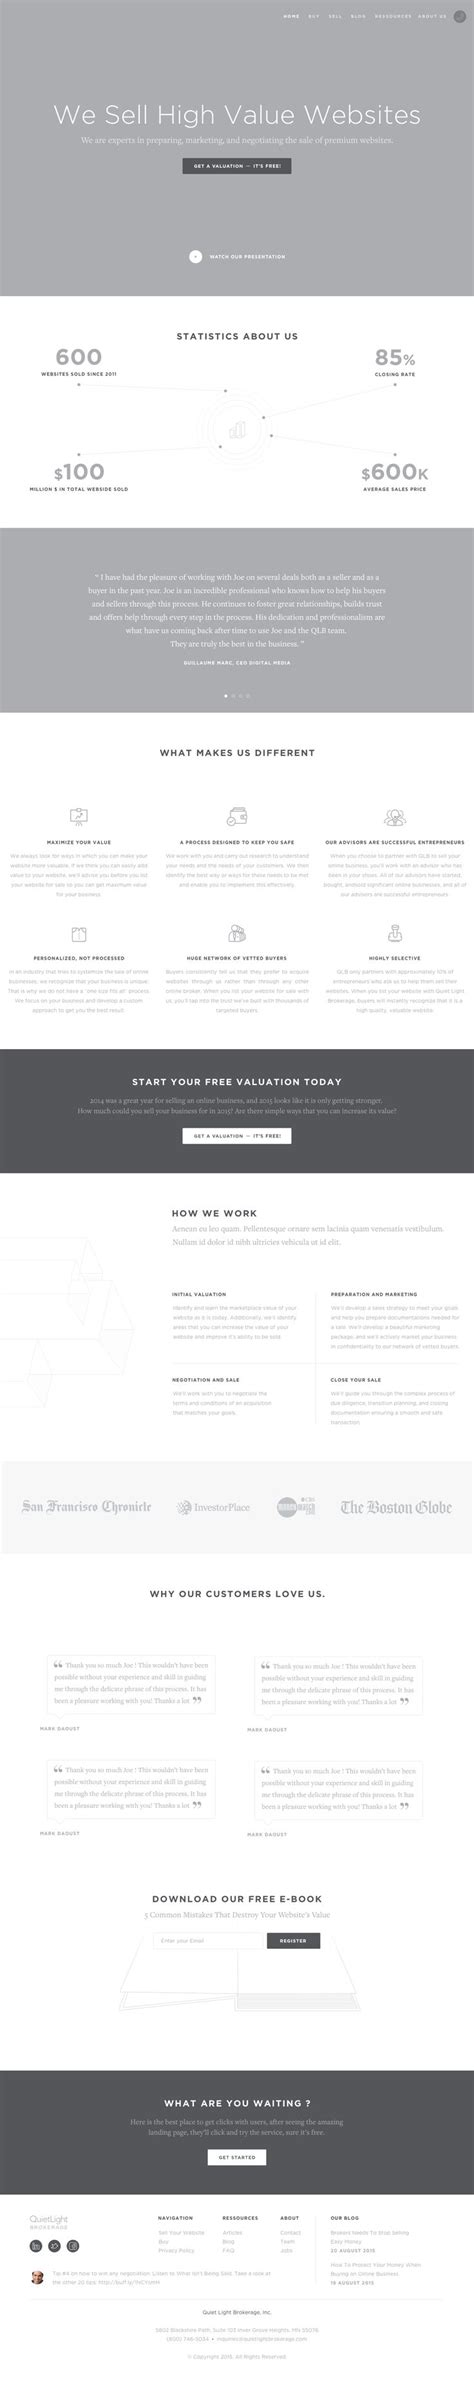 homepage wireframe  images wireframe web design